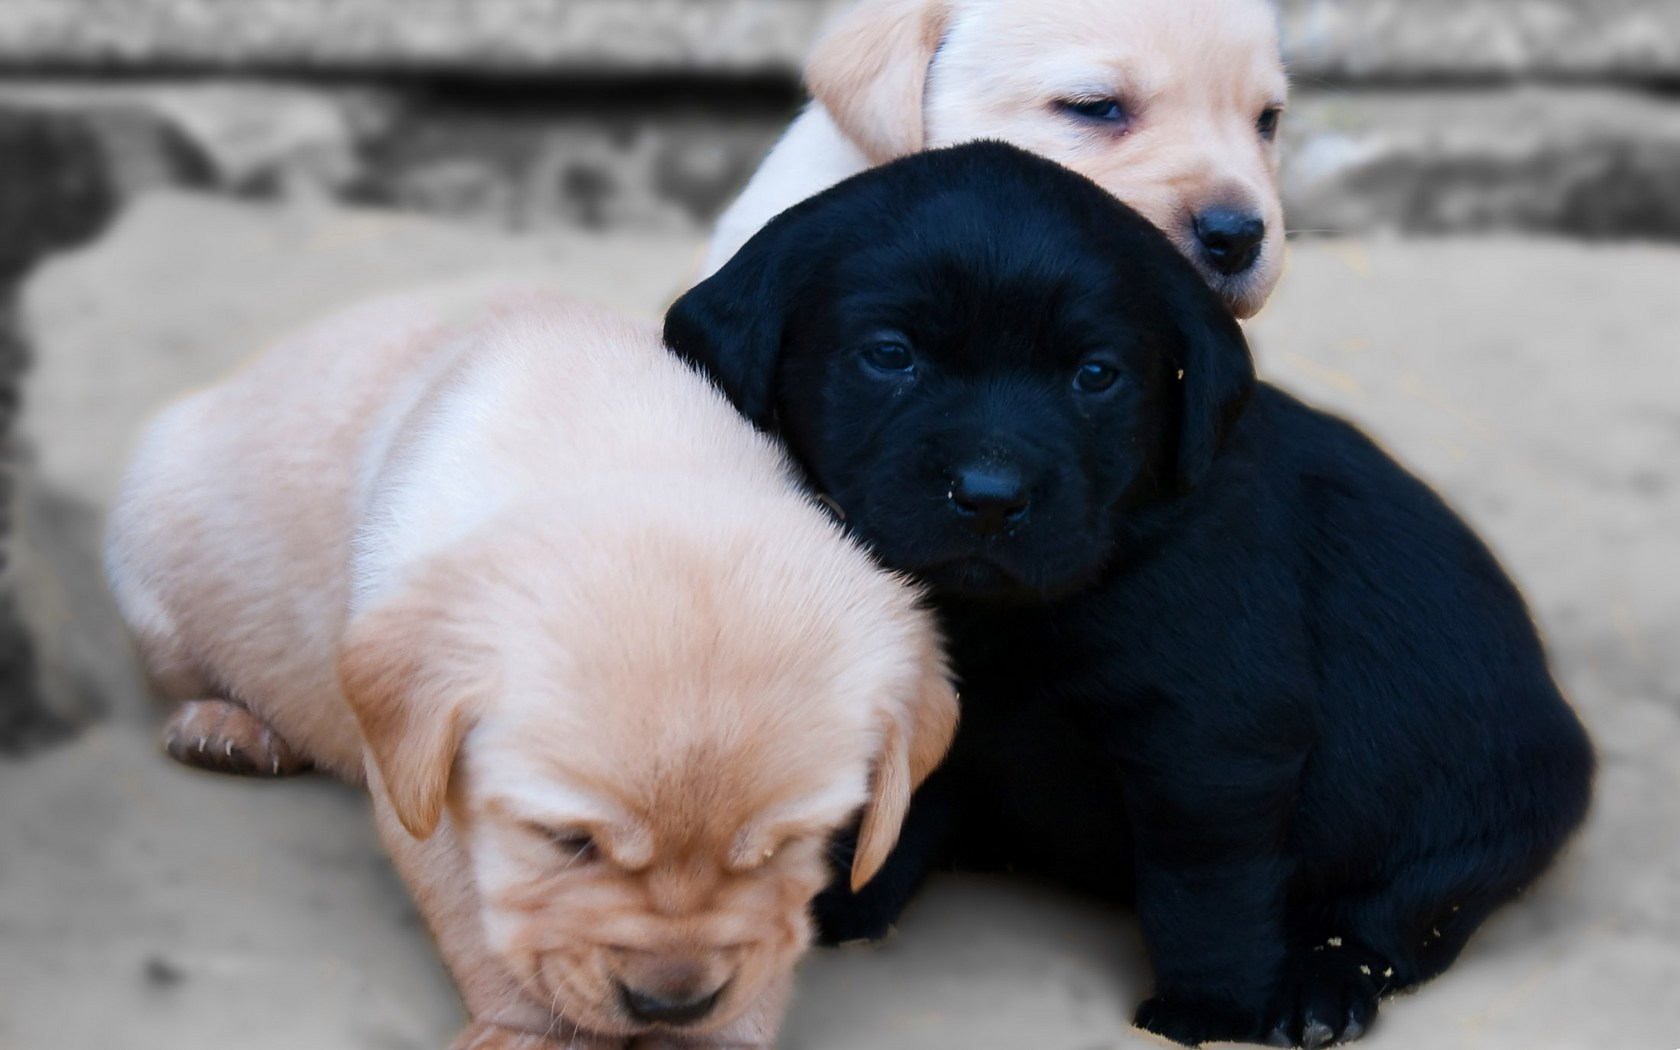 Download full size Puppy trio Dogs wallpaper / 1680x1050